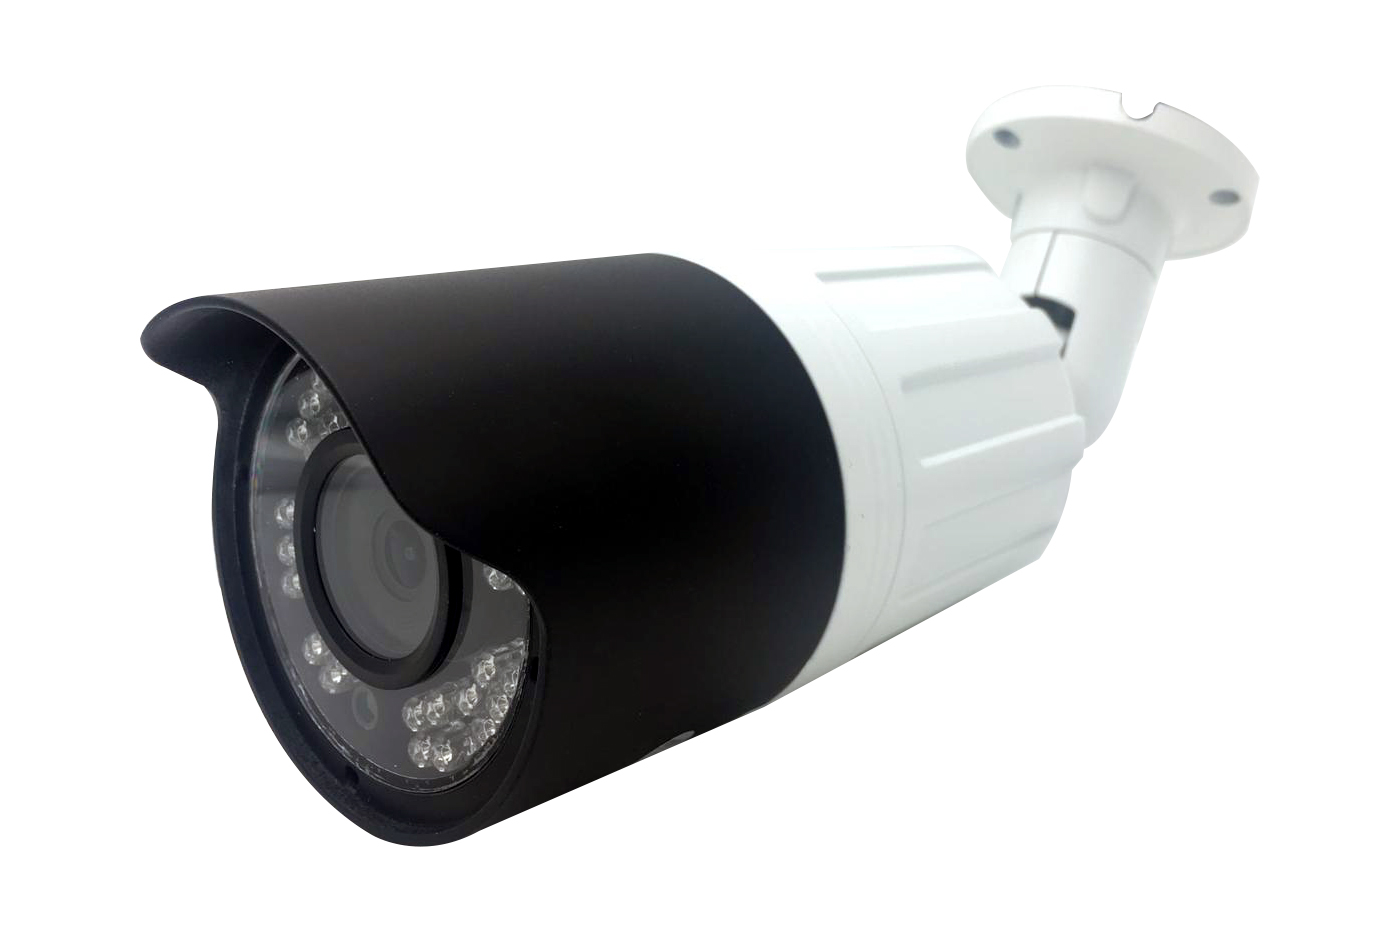 Telecamera videosorveglianza ahd bnc 4mp 42Led sicurezza 12mm all-1675